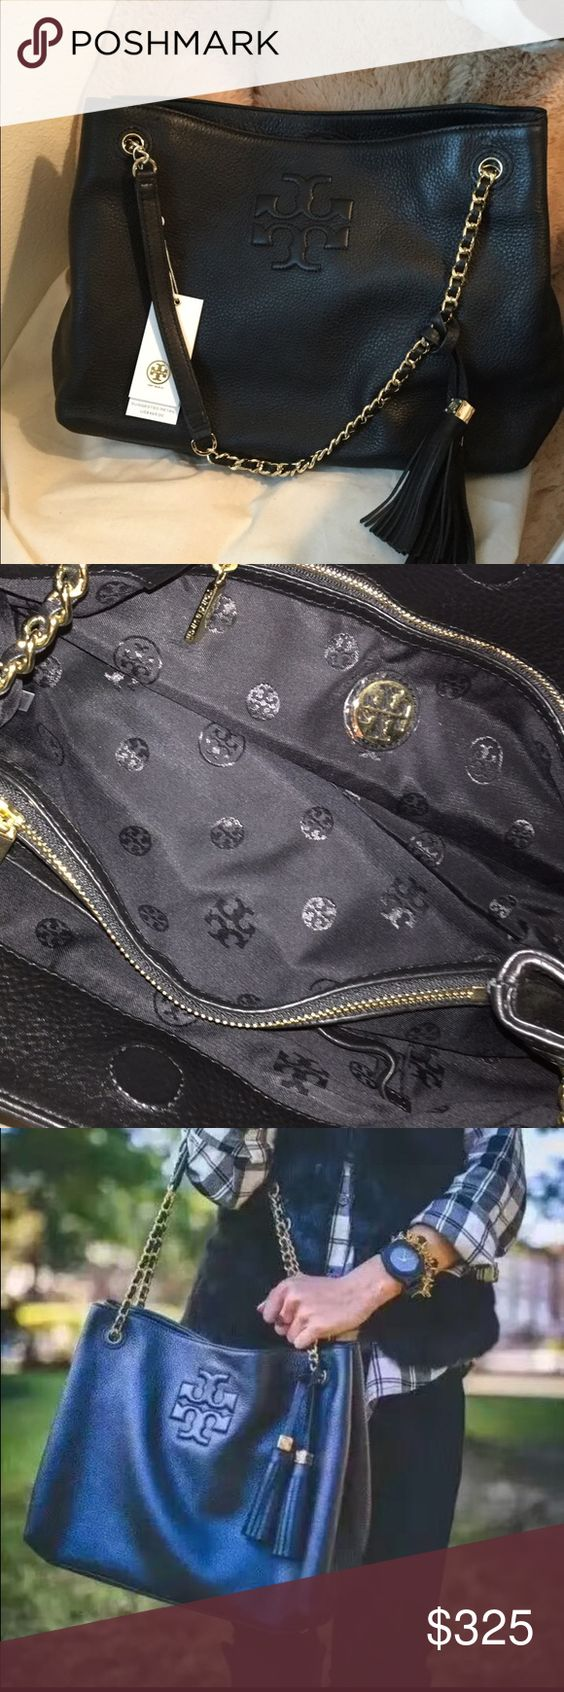 "Tory burch Marion tote Holds a large wallet, a phone, a cosmetic case and a 10"" tablet or an extra pair of shoes Magnetic snap closure Adjustable chain-and-leather shoulder strap with 9"" (24.5 cm) drop 1 interior center zip compartment, 1 zipper pocket, 2 open pockets, 1 snap pocket Height: 9.96"" (26 cm) Length: 13.5"" (34 cm) Depth: 5.9"" (15 cm) Tory Burch Bags Totes"